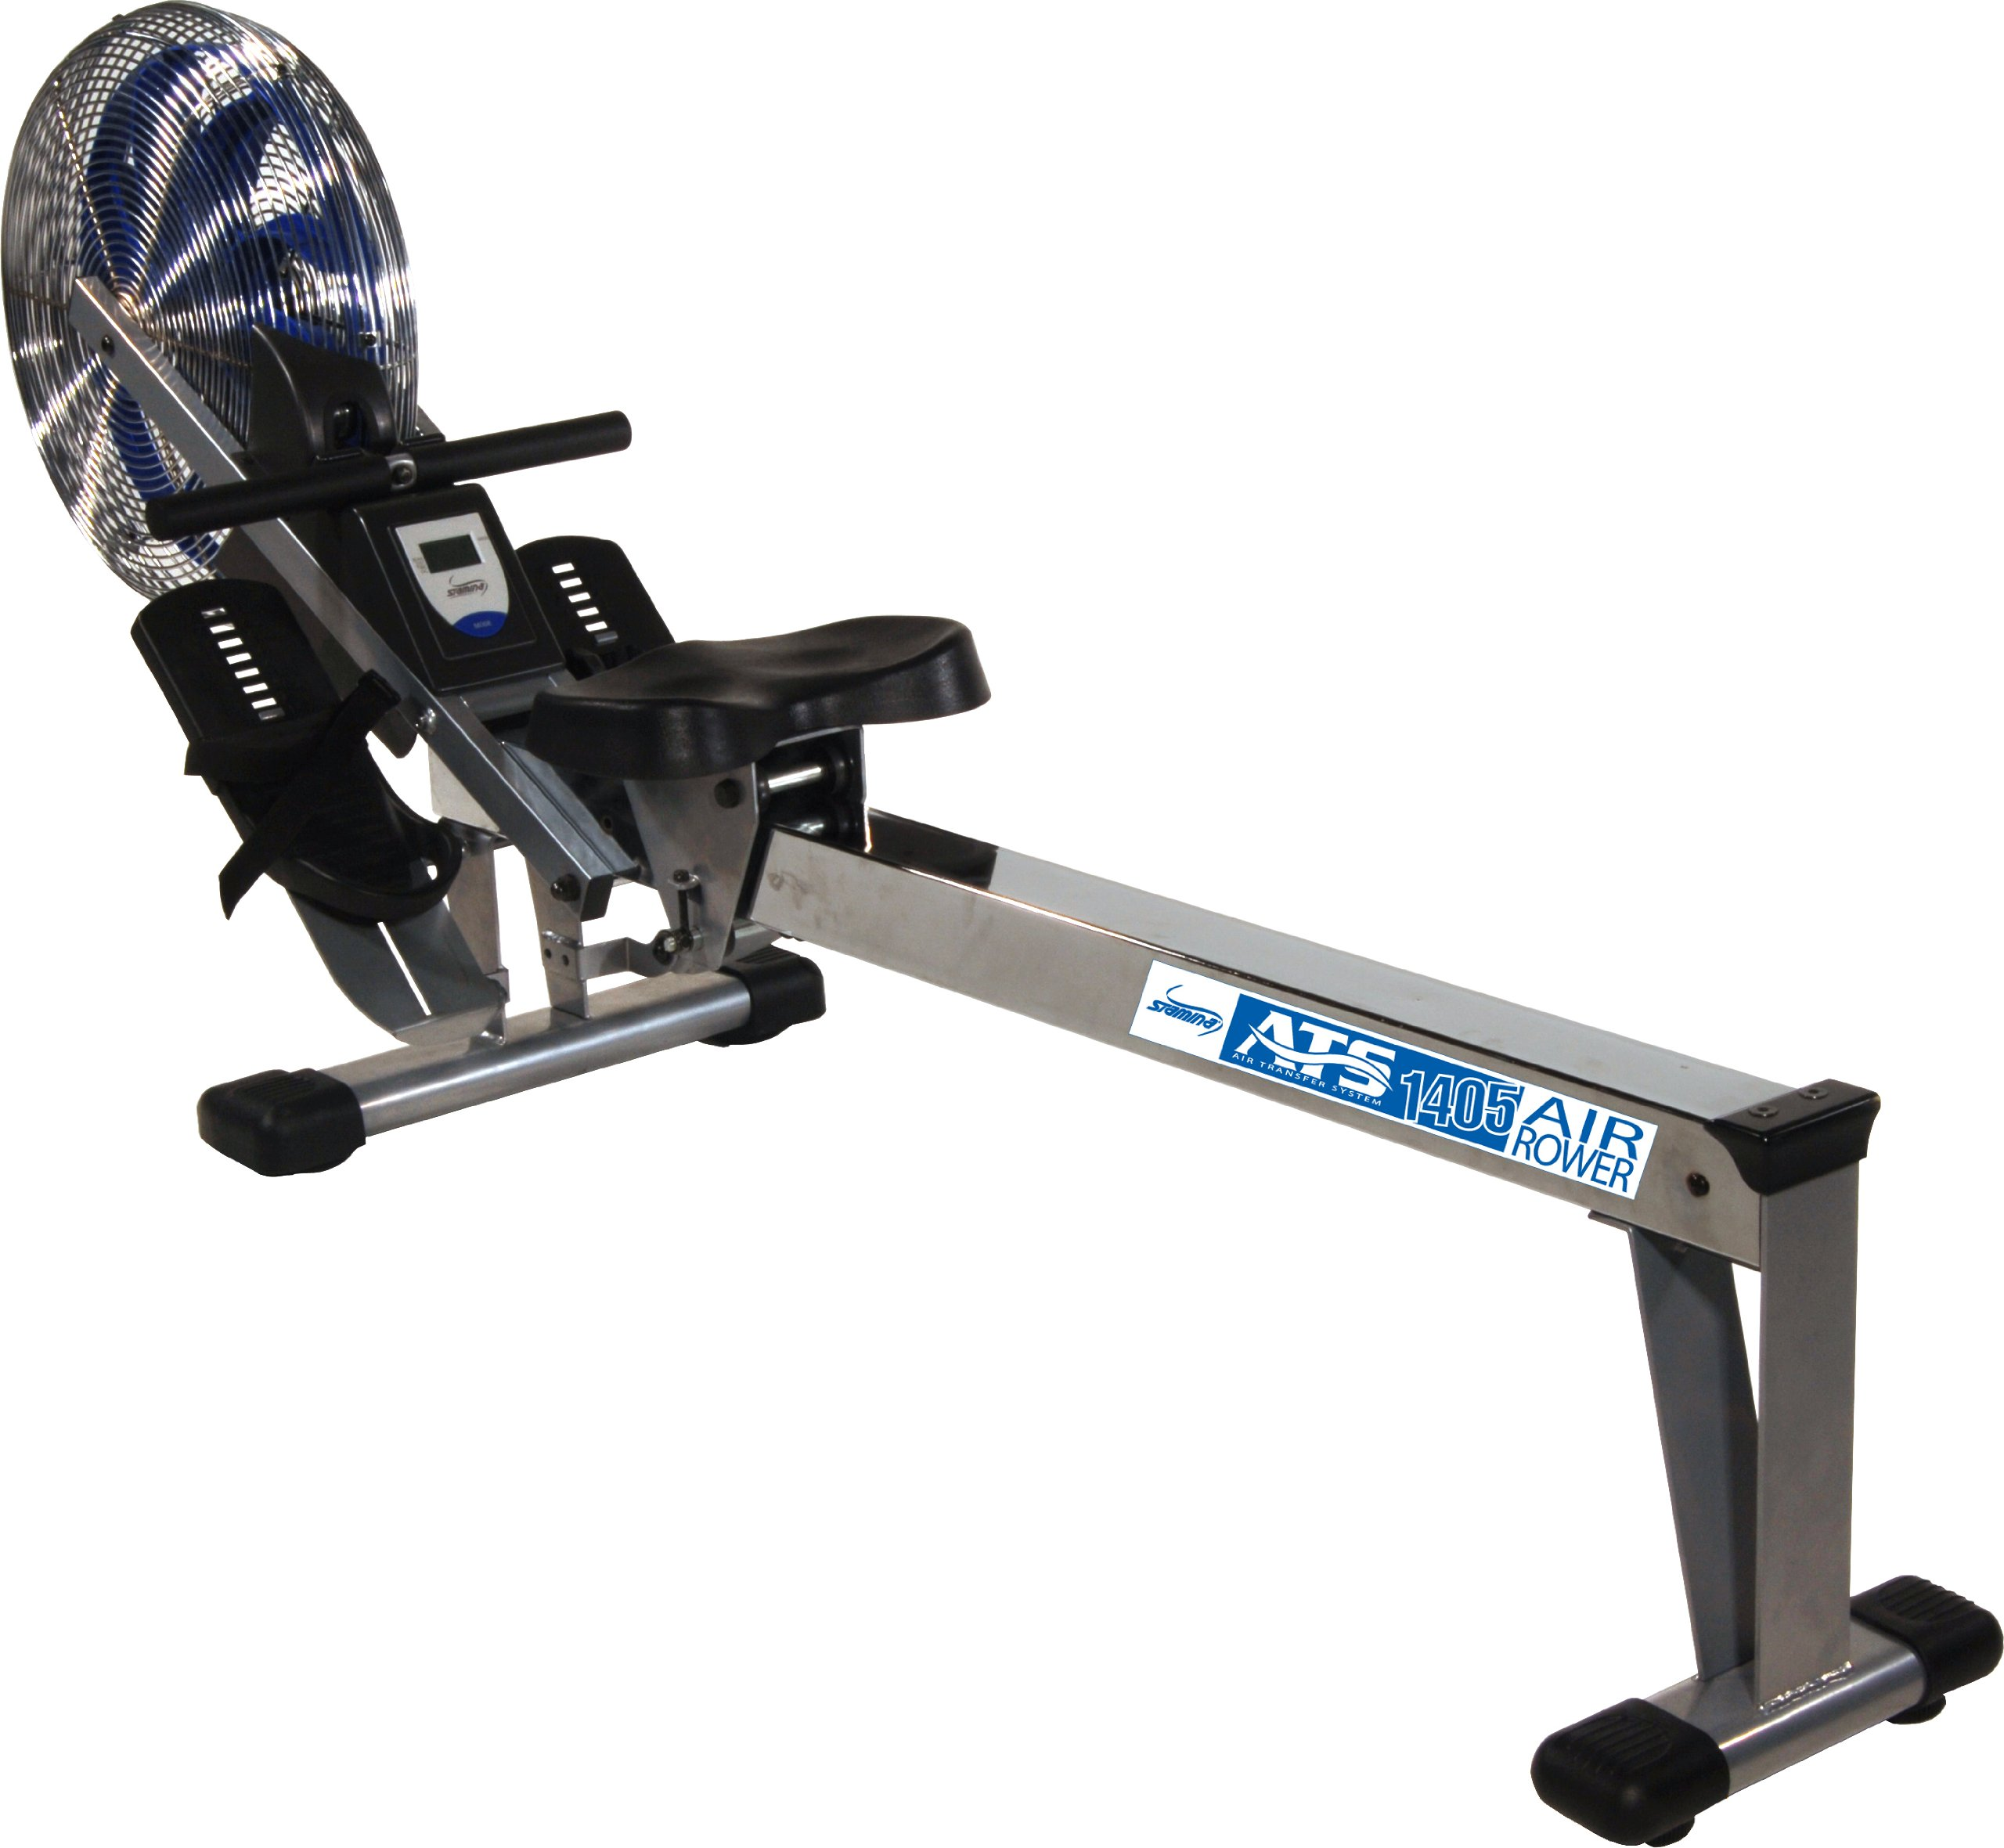 Stamina 35-1405 ATS Air Rower 1405 Rowing Machine, Air Resistance, LCD Fitness Monitor, Folding and Built-in Wheels, Chrome/Blue/Black by Stamina (Image #2)